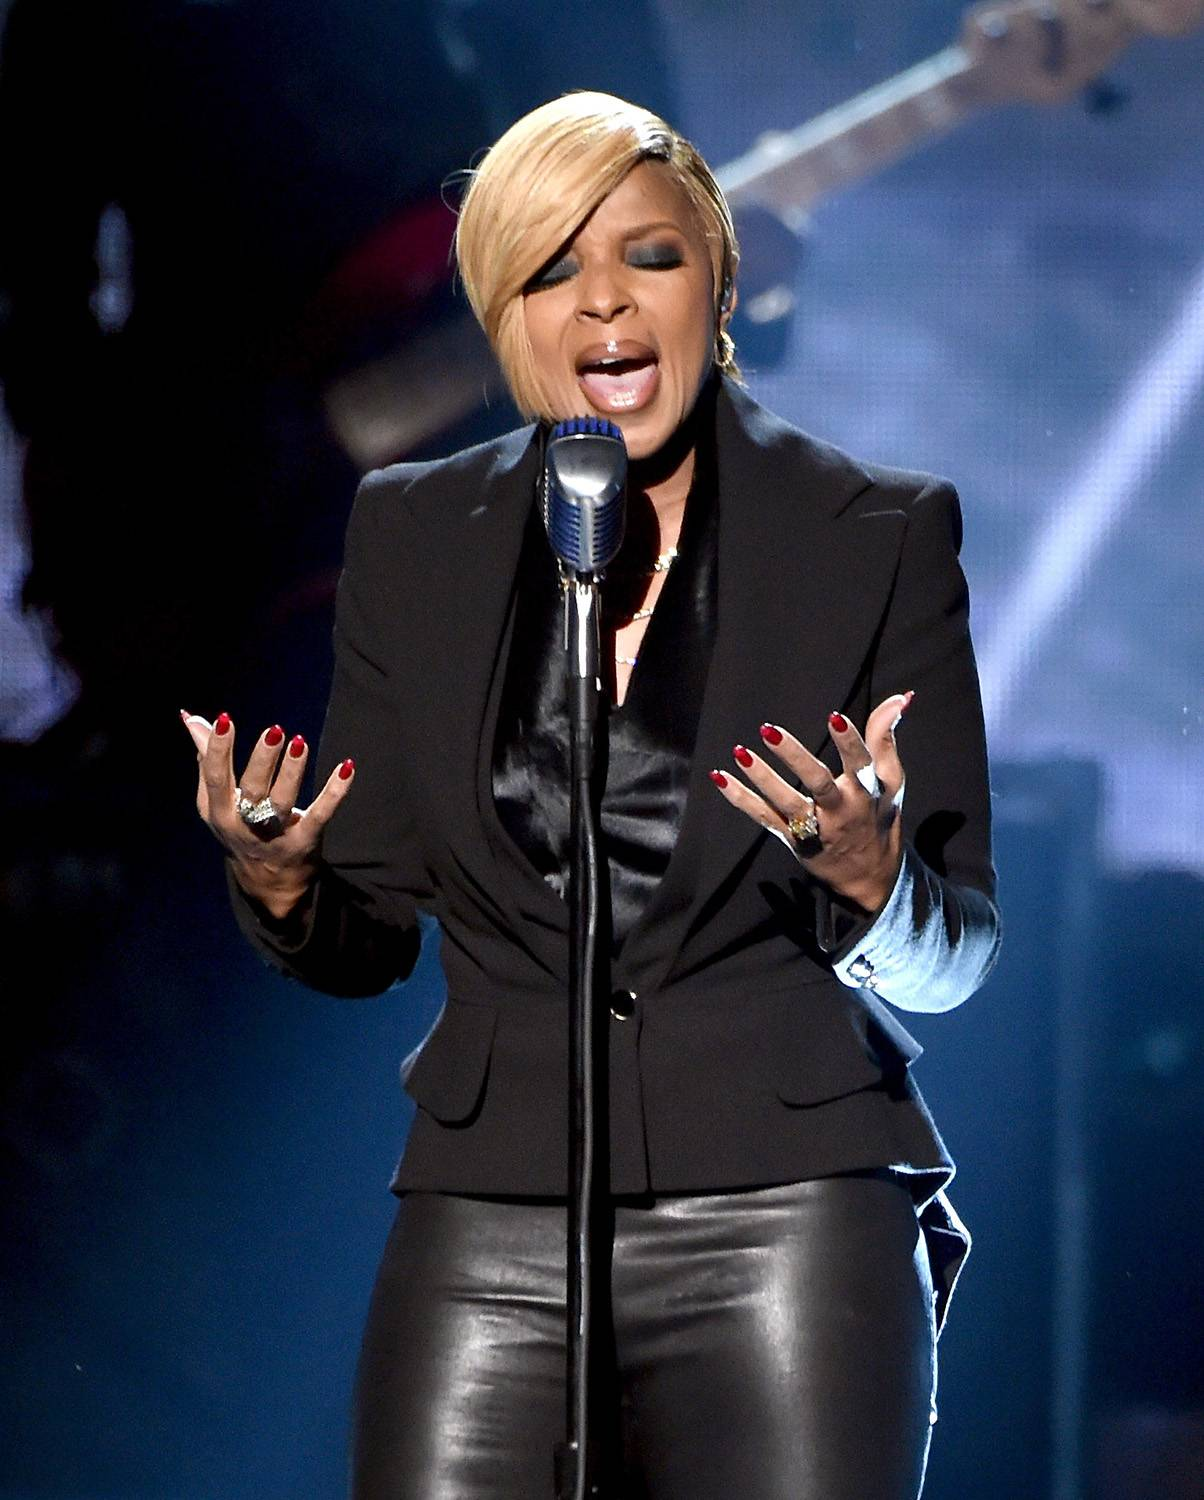 """Emotional Mary - The queen of R&B/soul, Mary J. Blige performed her new single, """"Therapy,"""" and brought the crowd to their feet looking and sounding better than ever.  (Photo: Kevin Winter/Getty Images)"""